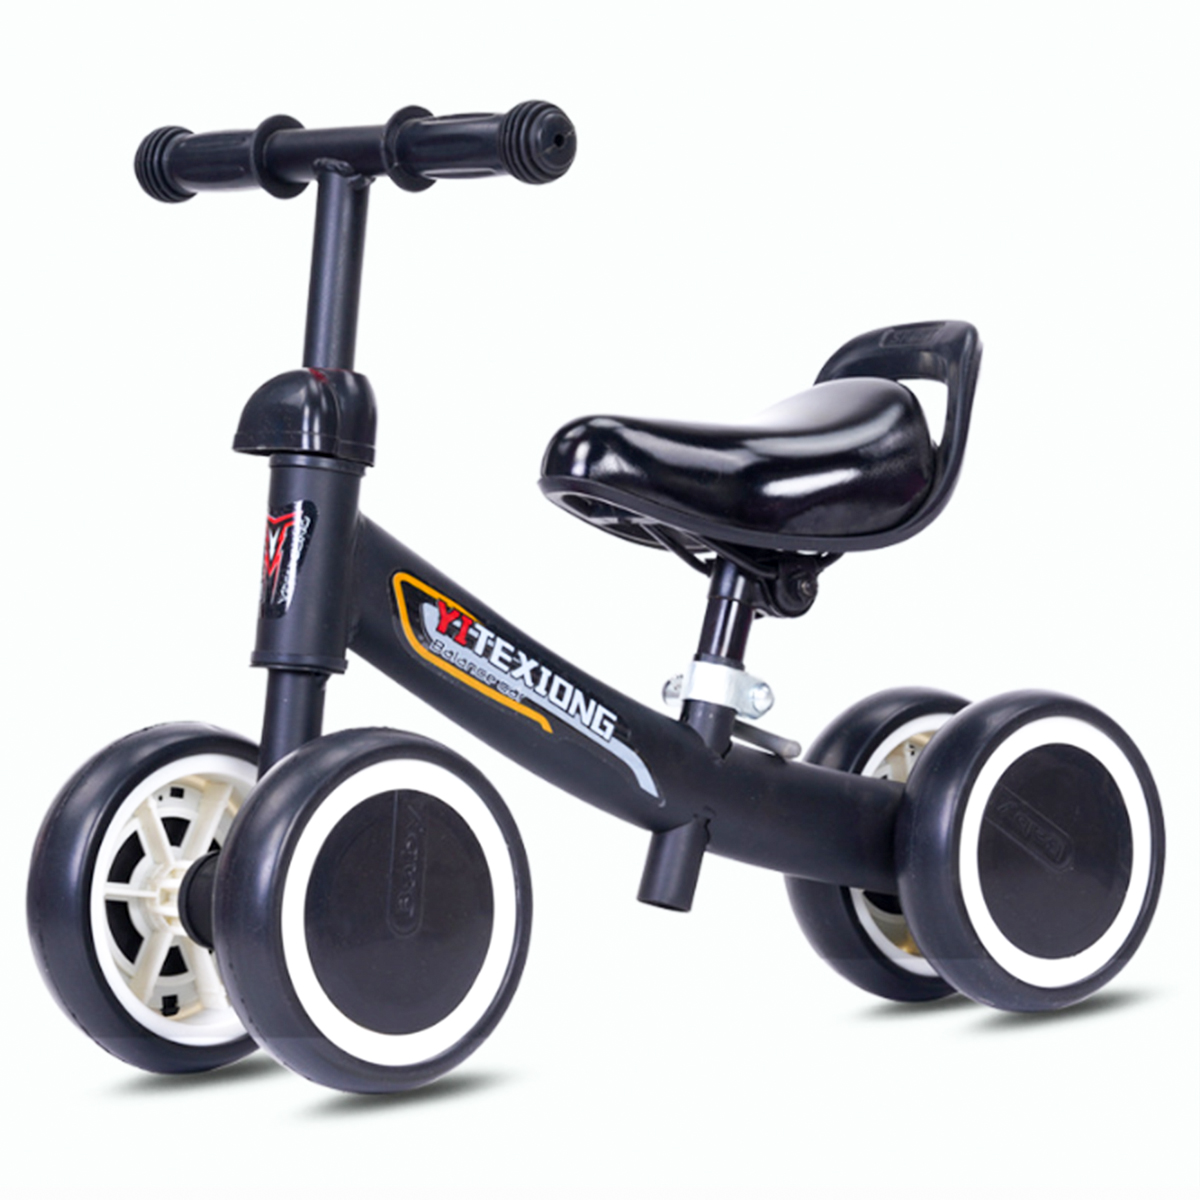 Baby No Pedals Balance Bike Kids Children Toddler Outdoor/Indoor Walker Bicycle for 1-3 Years Old Boys&Girls Balance Training